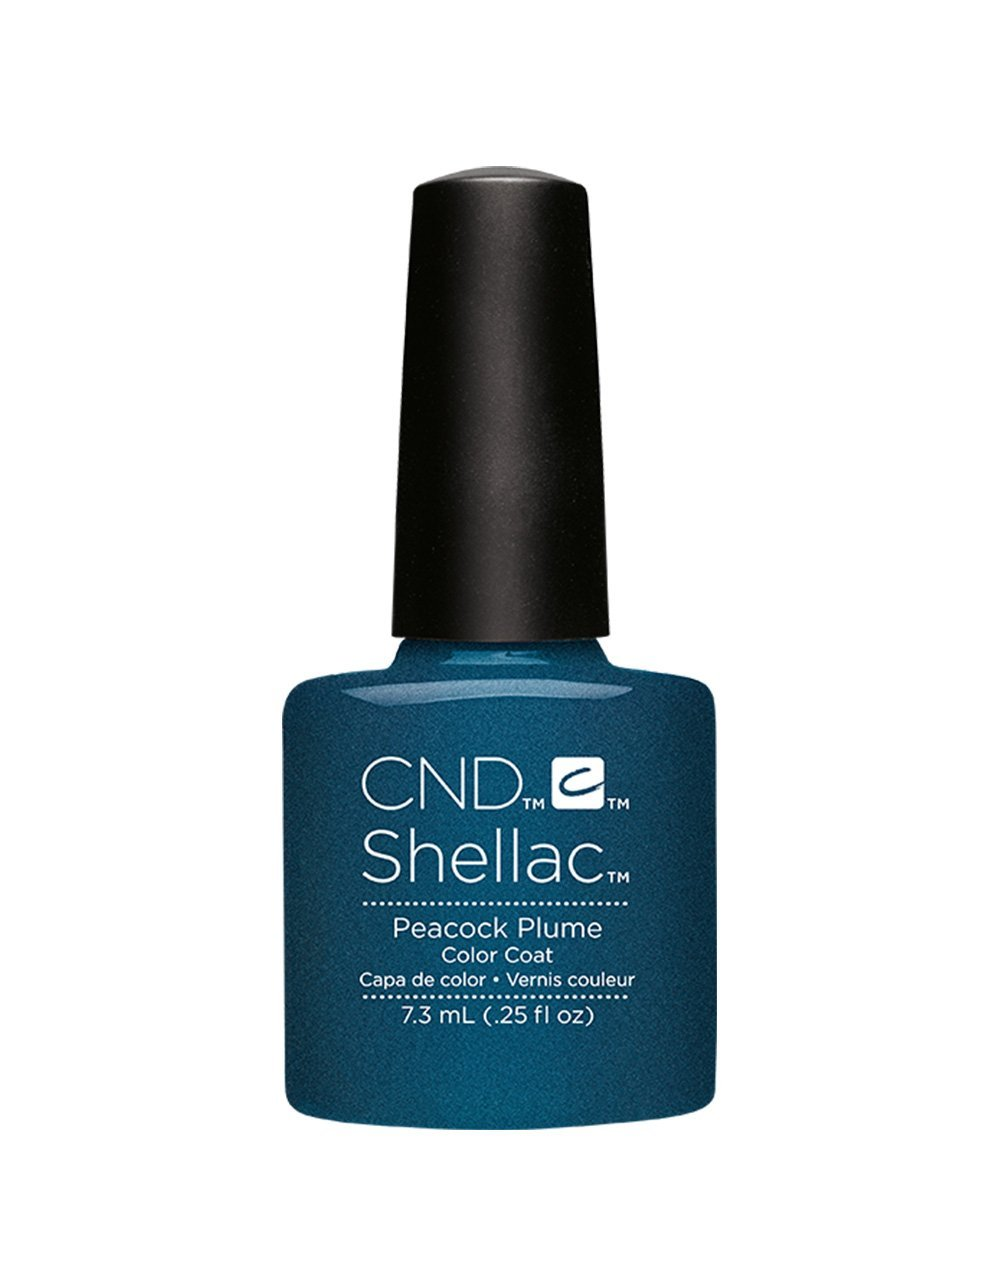 CND Shellac Contradicitons Collection - NEW for Autumn 2015 - UV Soak Off Gel Nail Polish/Varnish (Peacock Plume - 1 bottle) Cnditsecond39